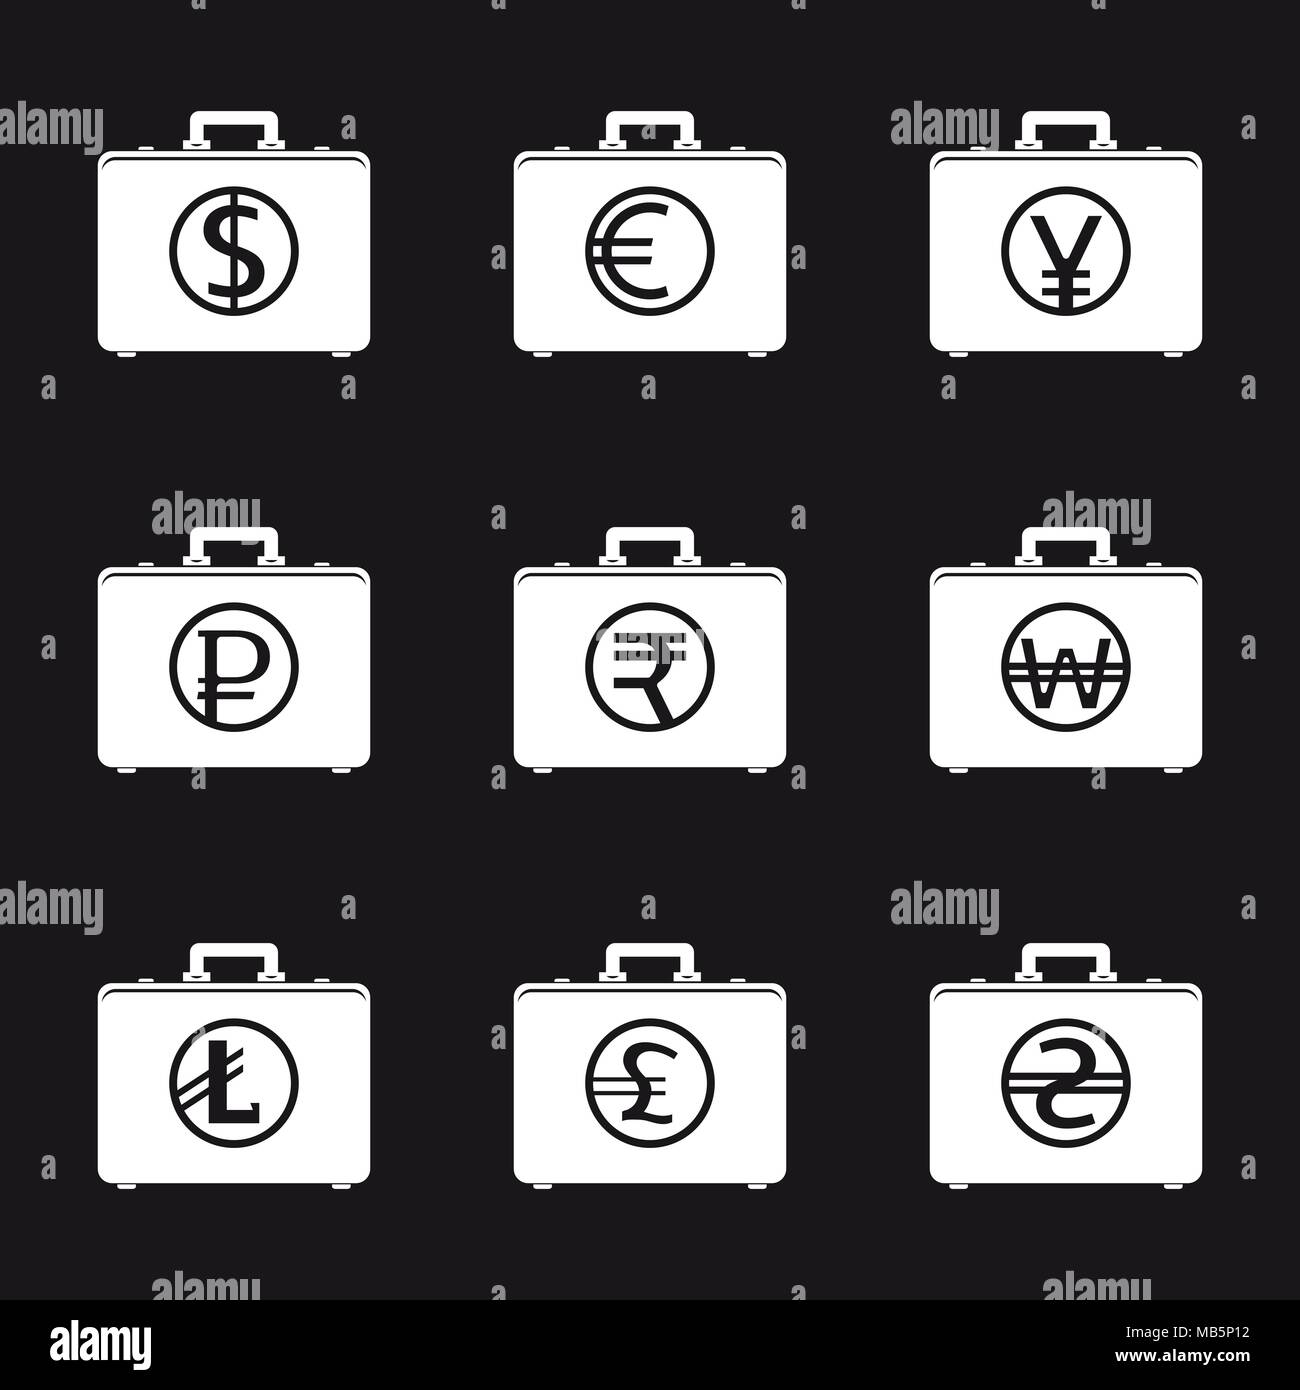 Set Of Money Bags With Currency Symbols Stock Vector Art